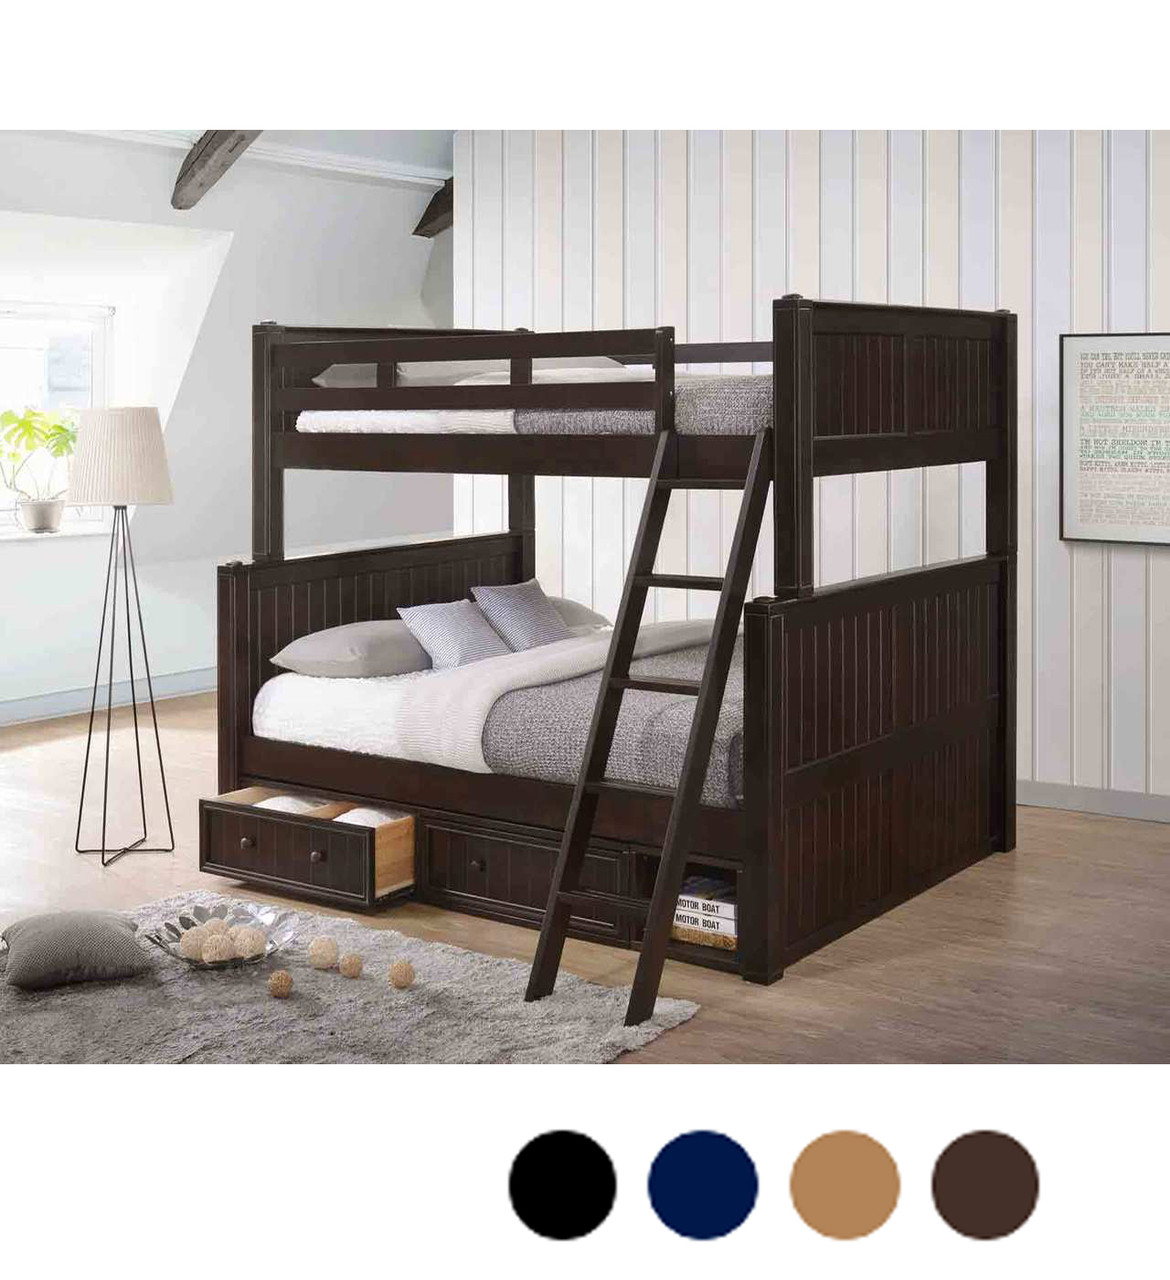 Dillon Xl Full Over Queen Wood Bead Board Bunk Bed